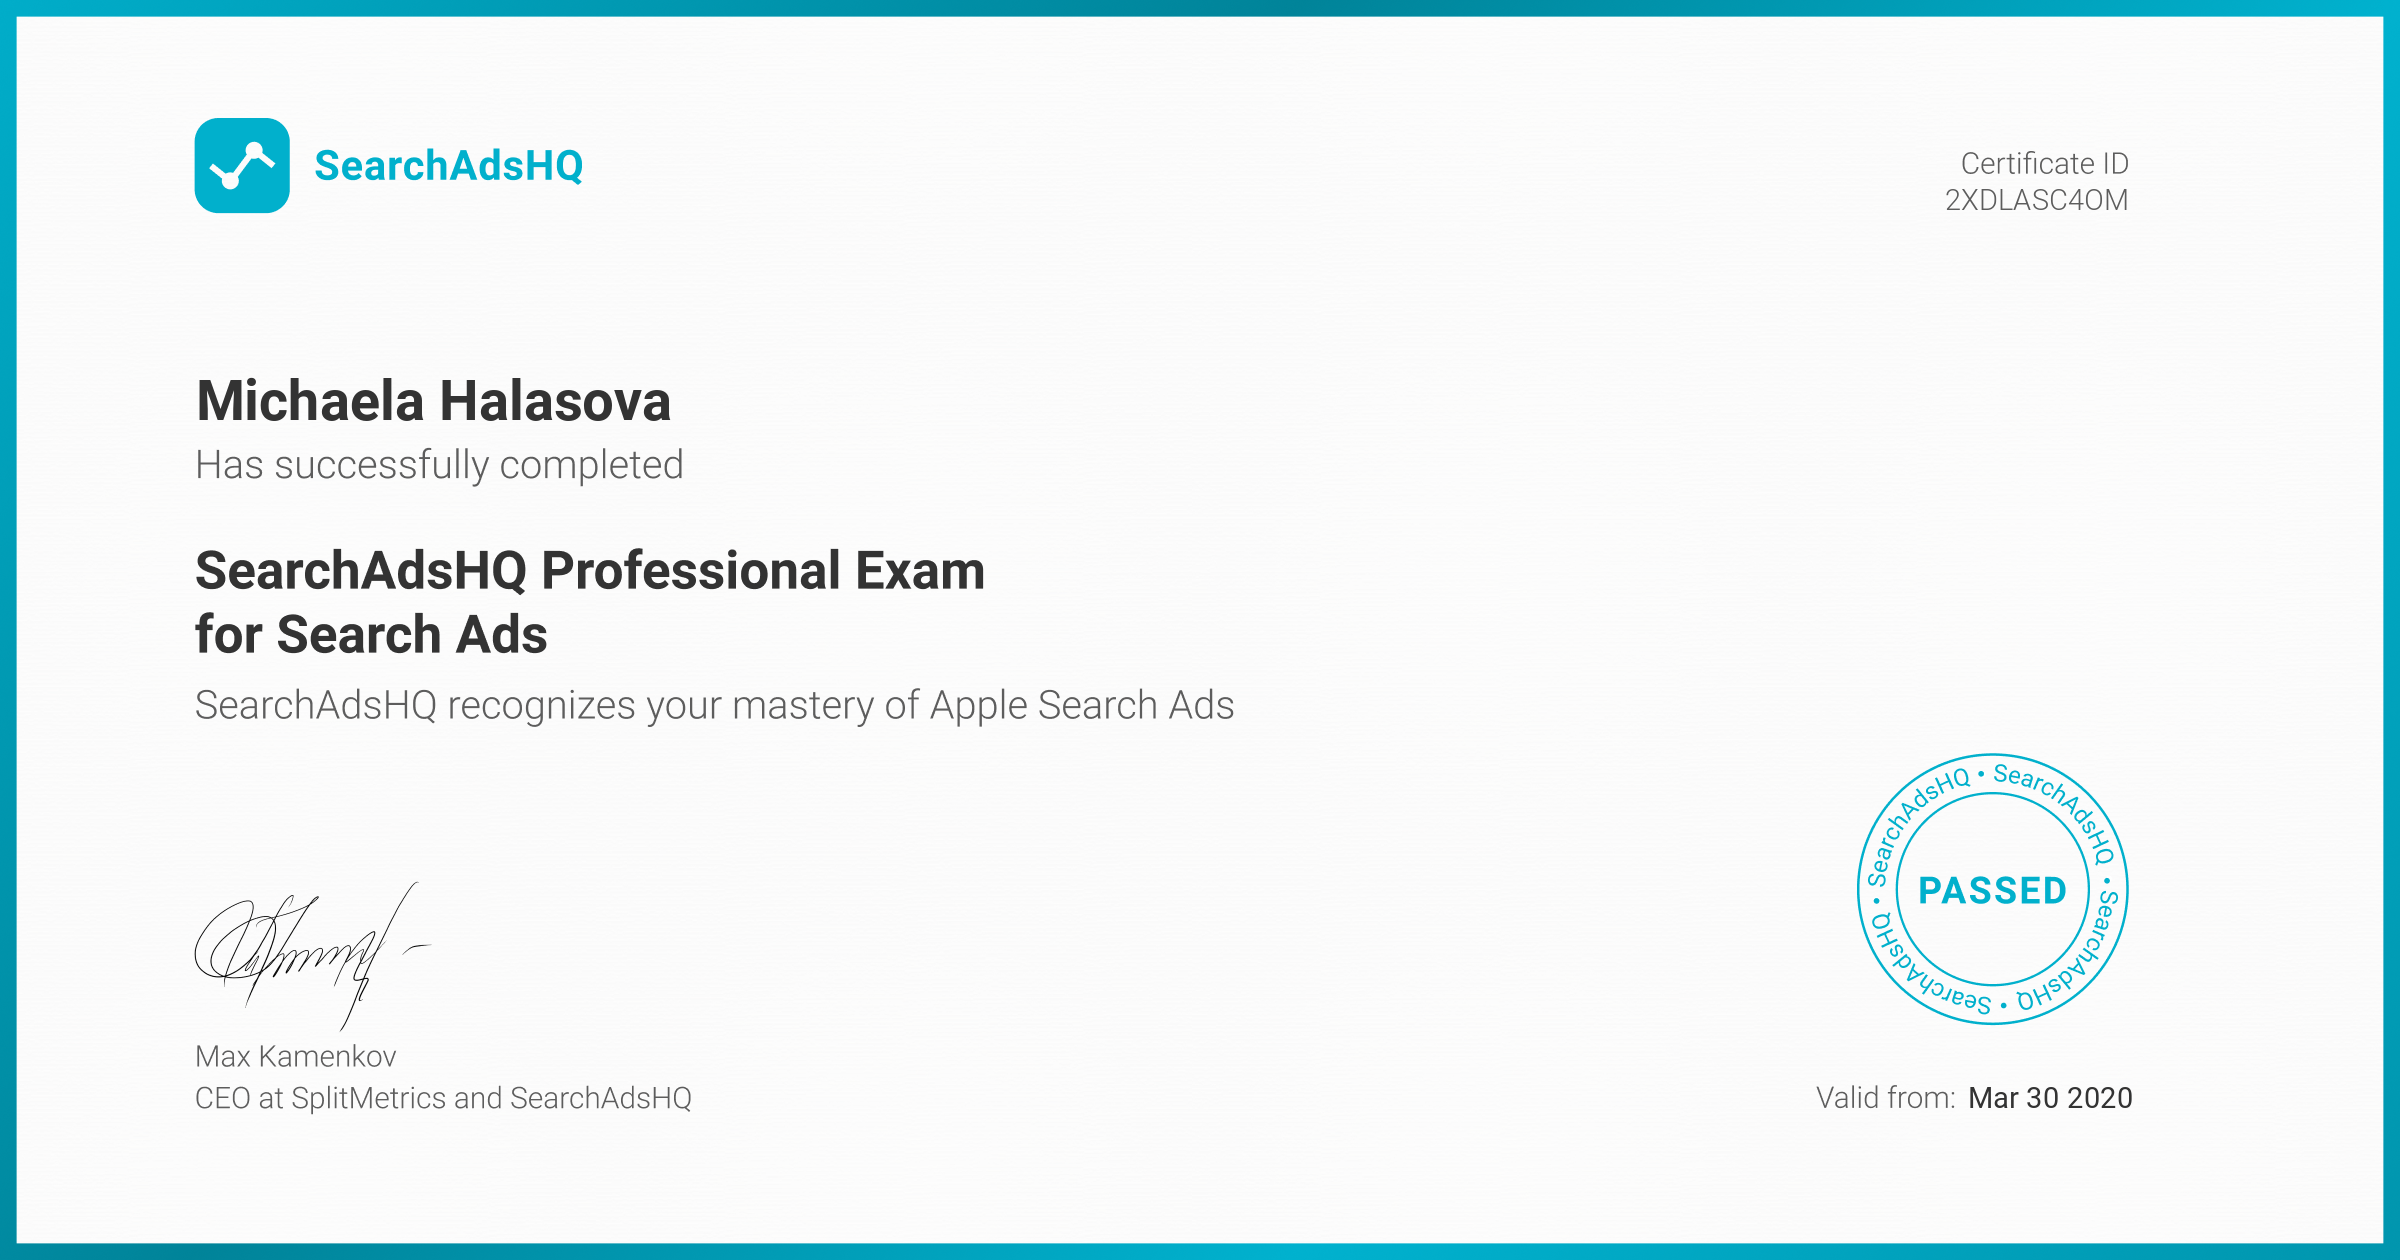 Certificate for Michaela Halasova | SearchAdsHQ Professional Exam for Search Ads